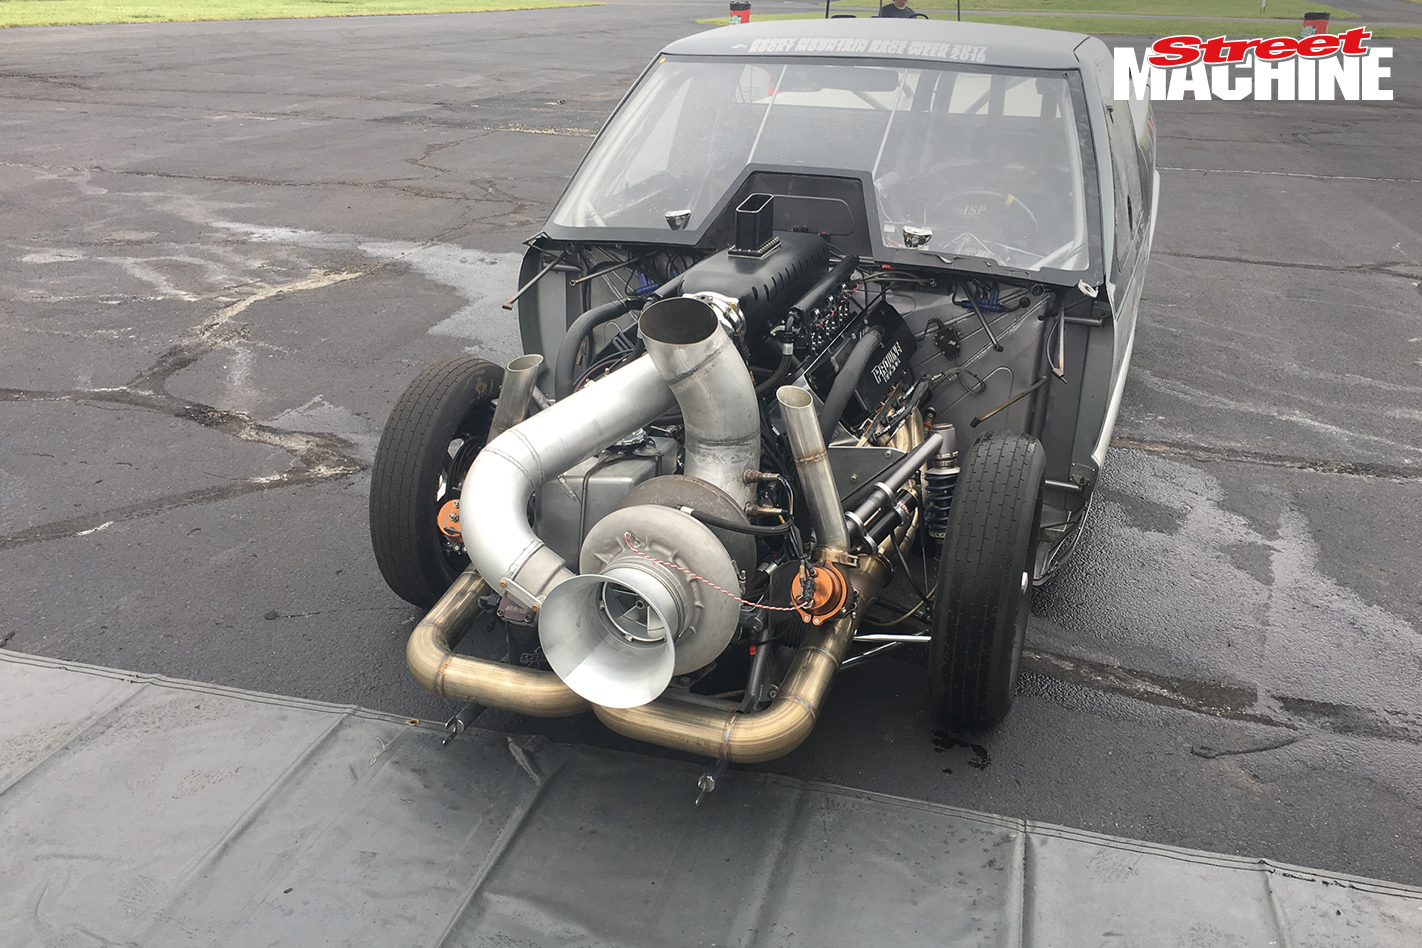 Larry Larson's Chev S10 gets a giant single turbo for Street